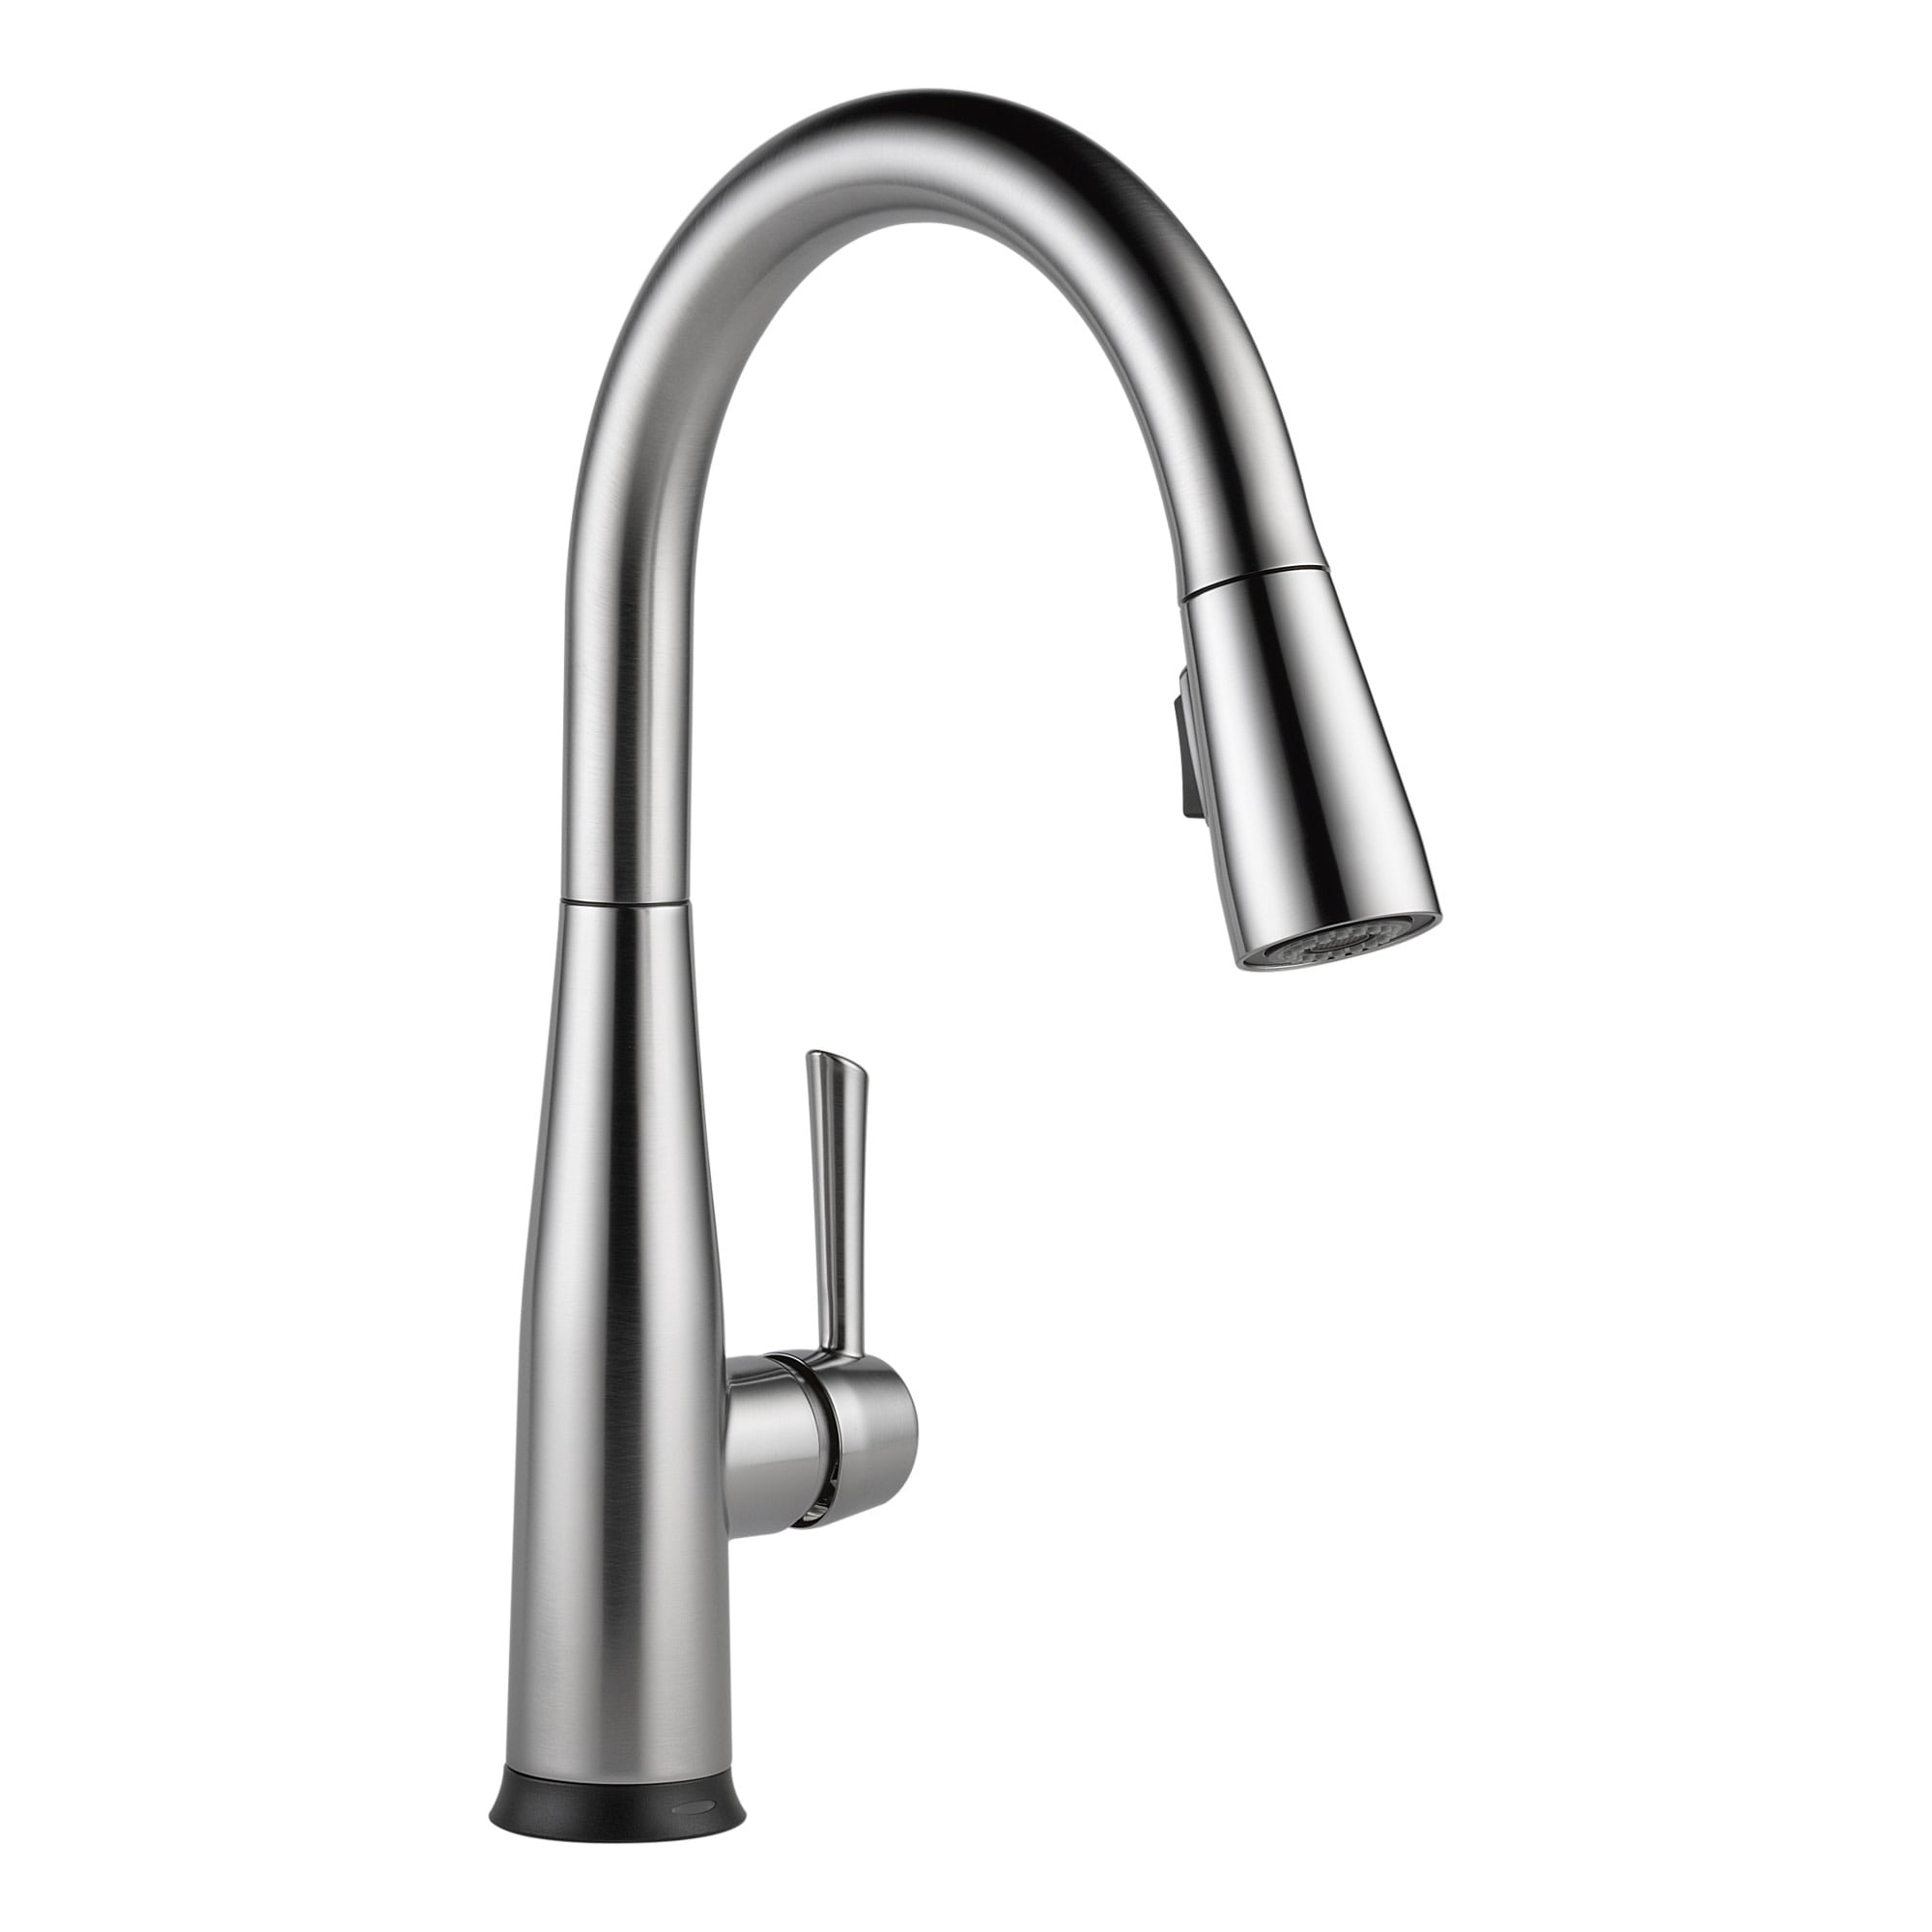 Delta 9113T-DST Essa Pull-Down Kitchen Faucet with On/Off Touch Activation  and Magnetic Docking Spray Head